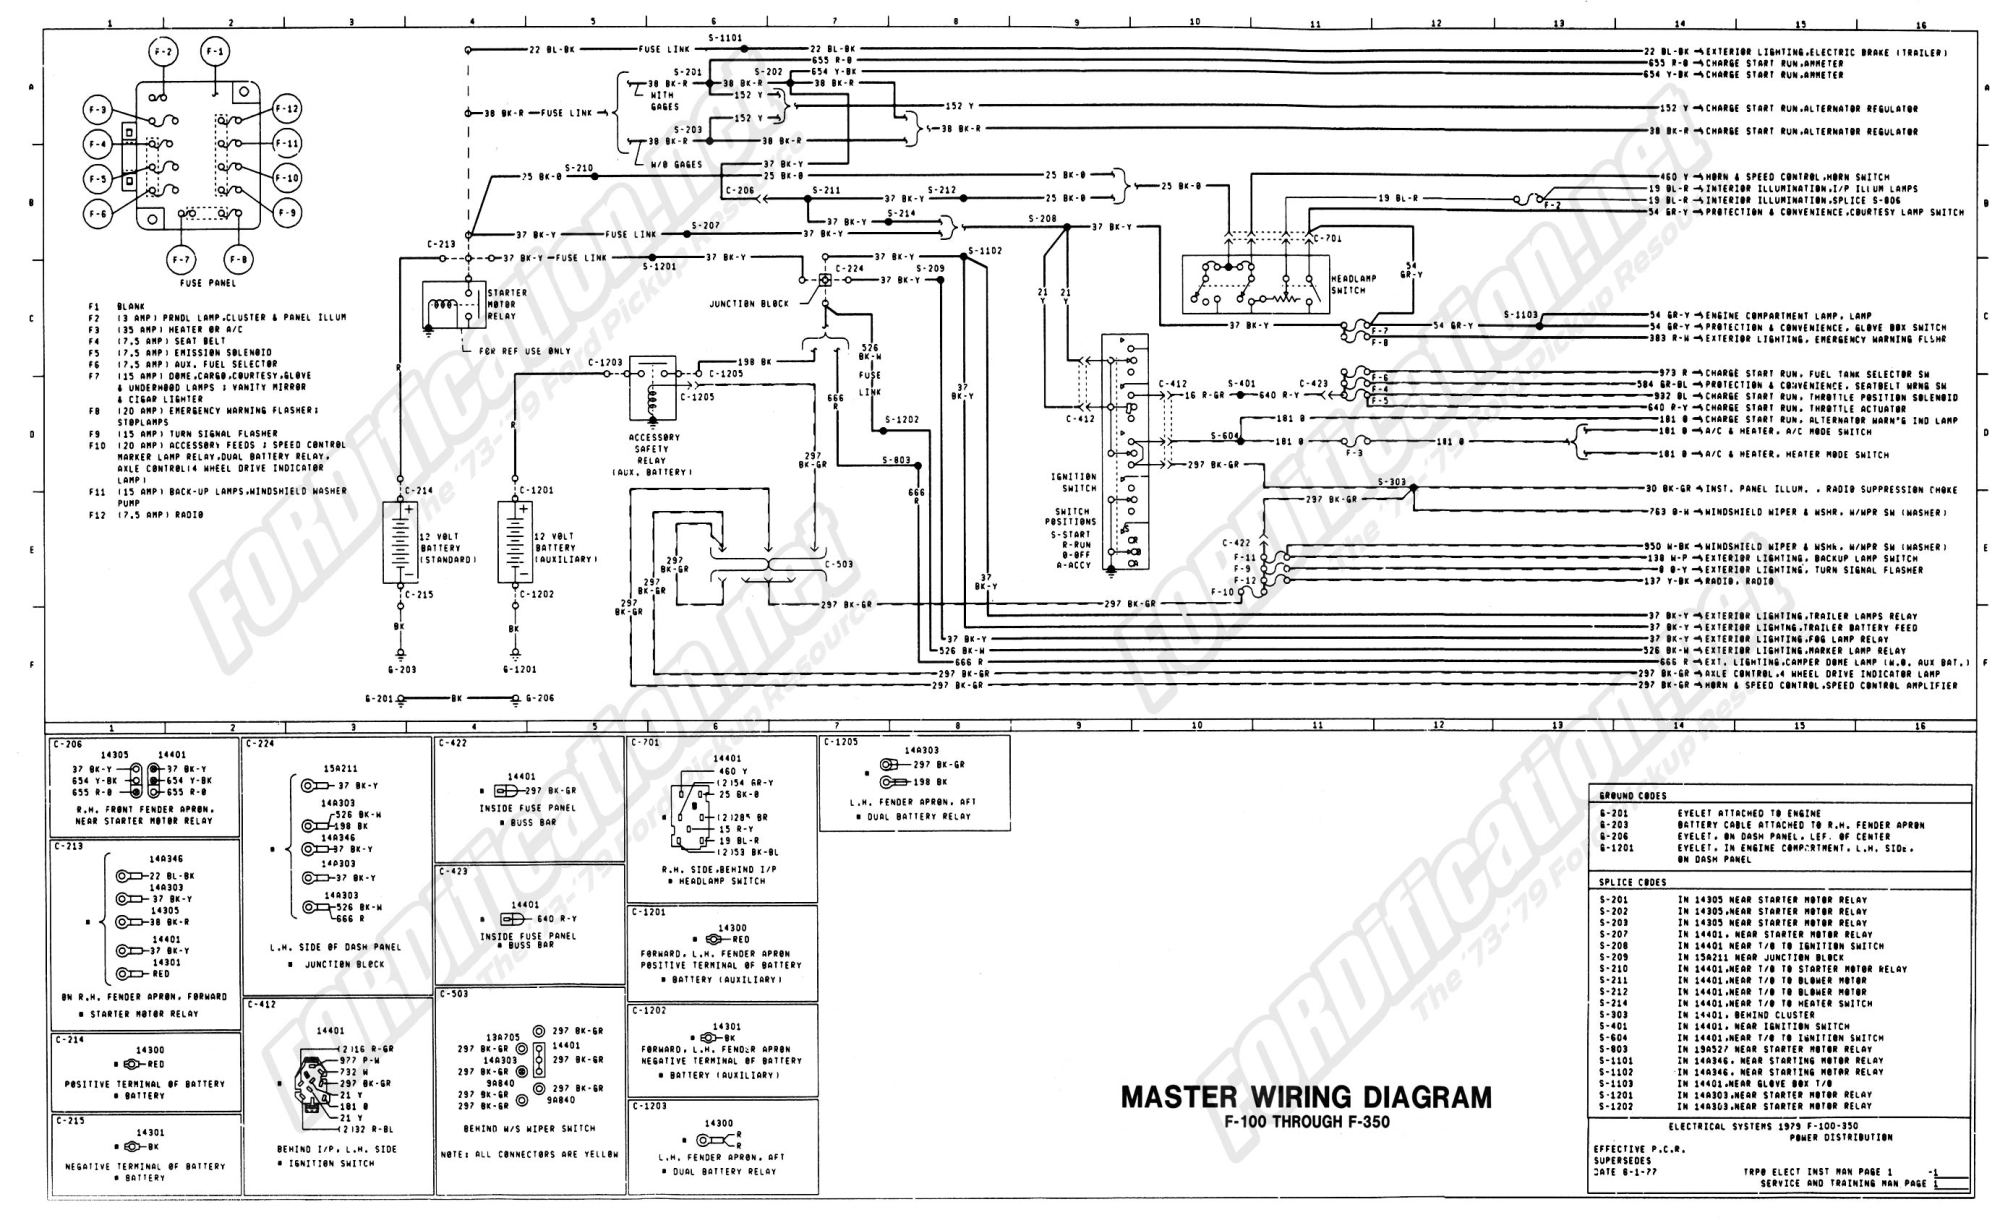 hight resolution of 1973 1979 ford truck wiring diagrams schematics fordification net rh fordification net 1976 ford f150 ignition switch wiring diagram 1976 ford f150 ignition